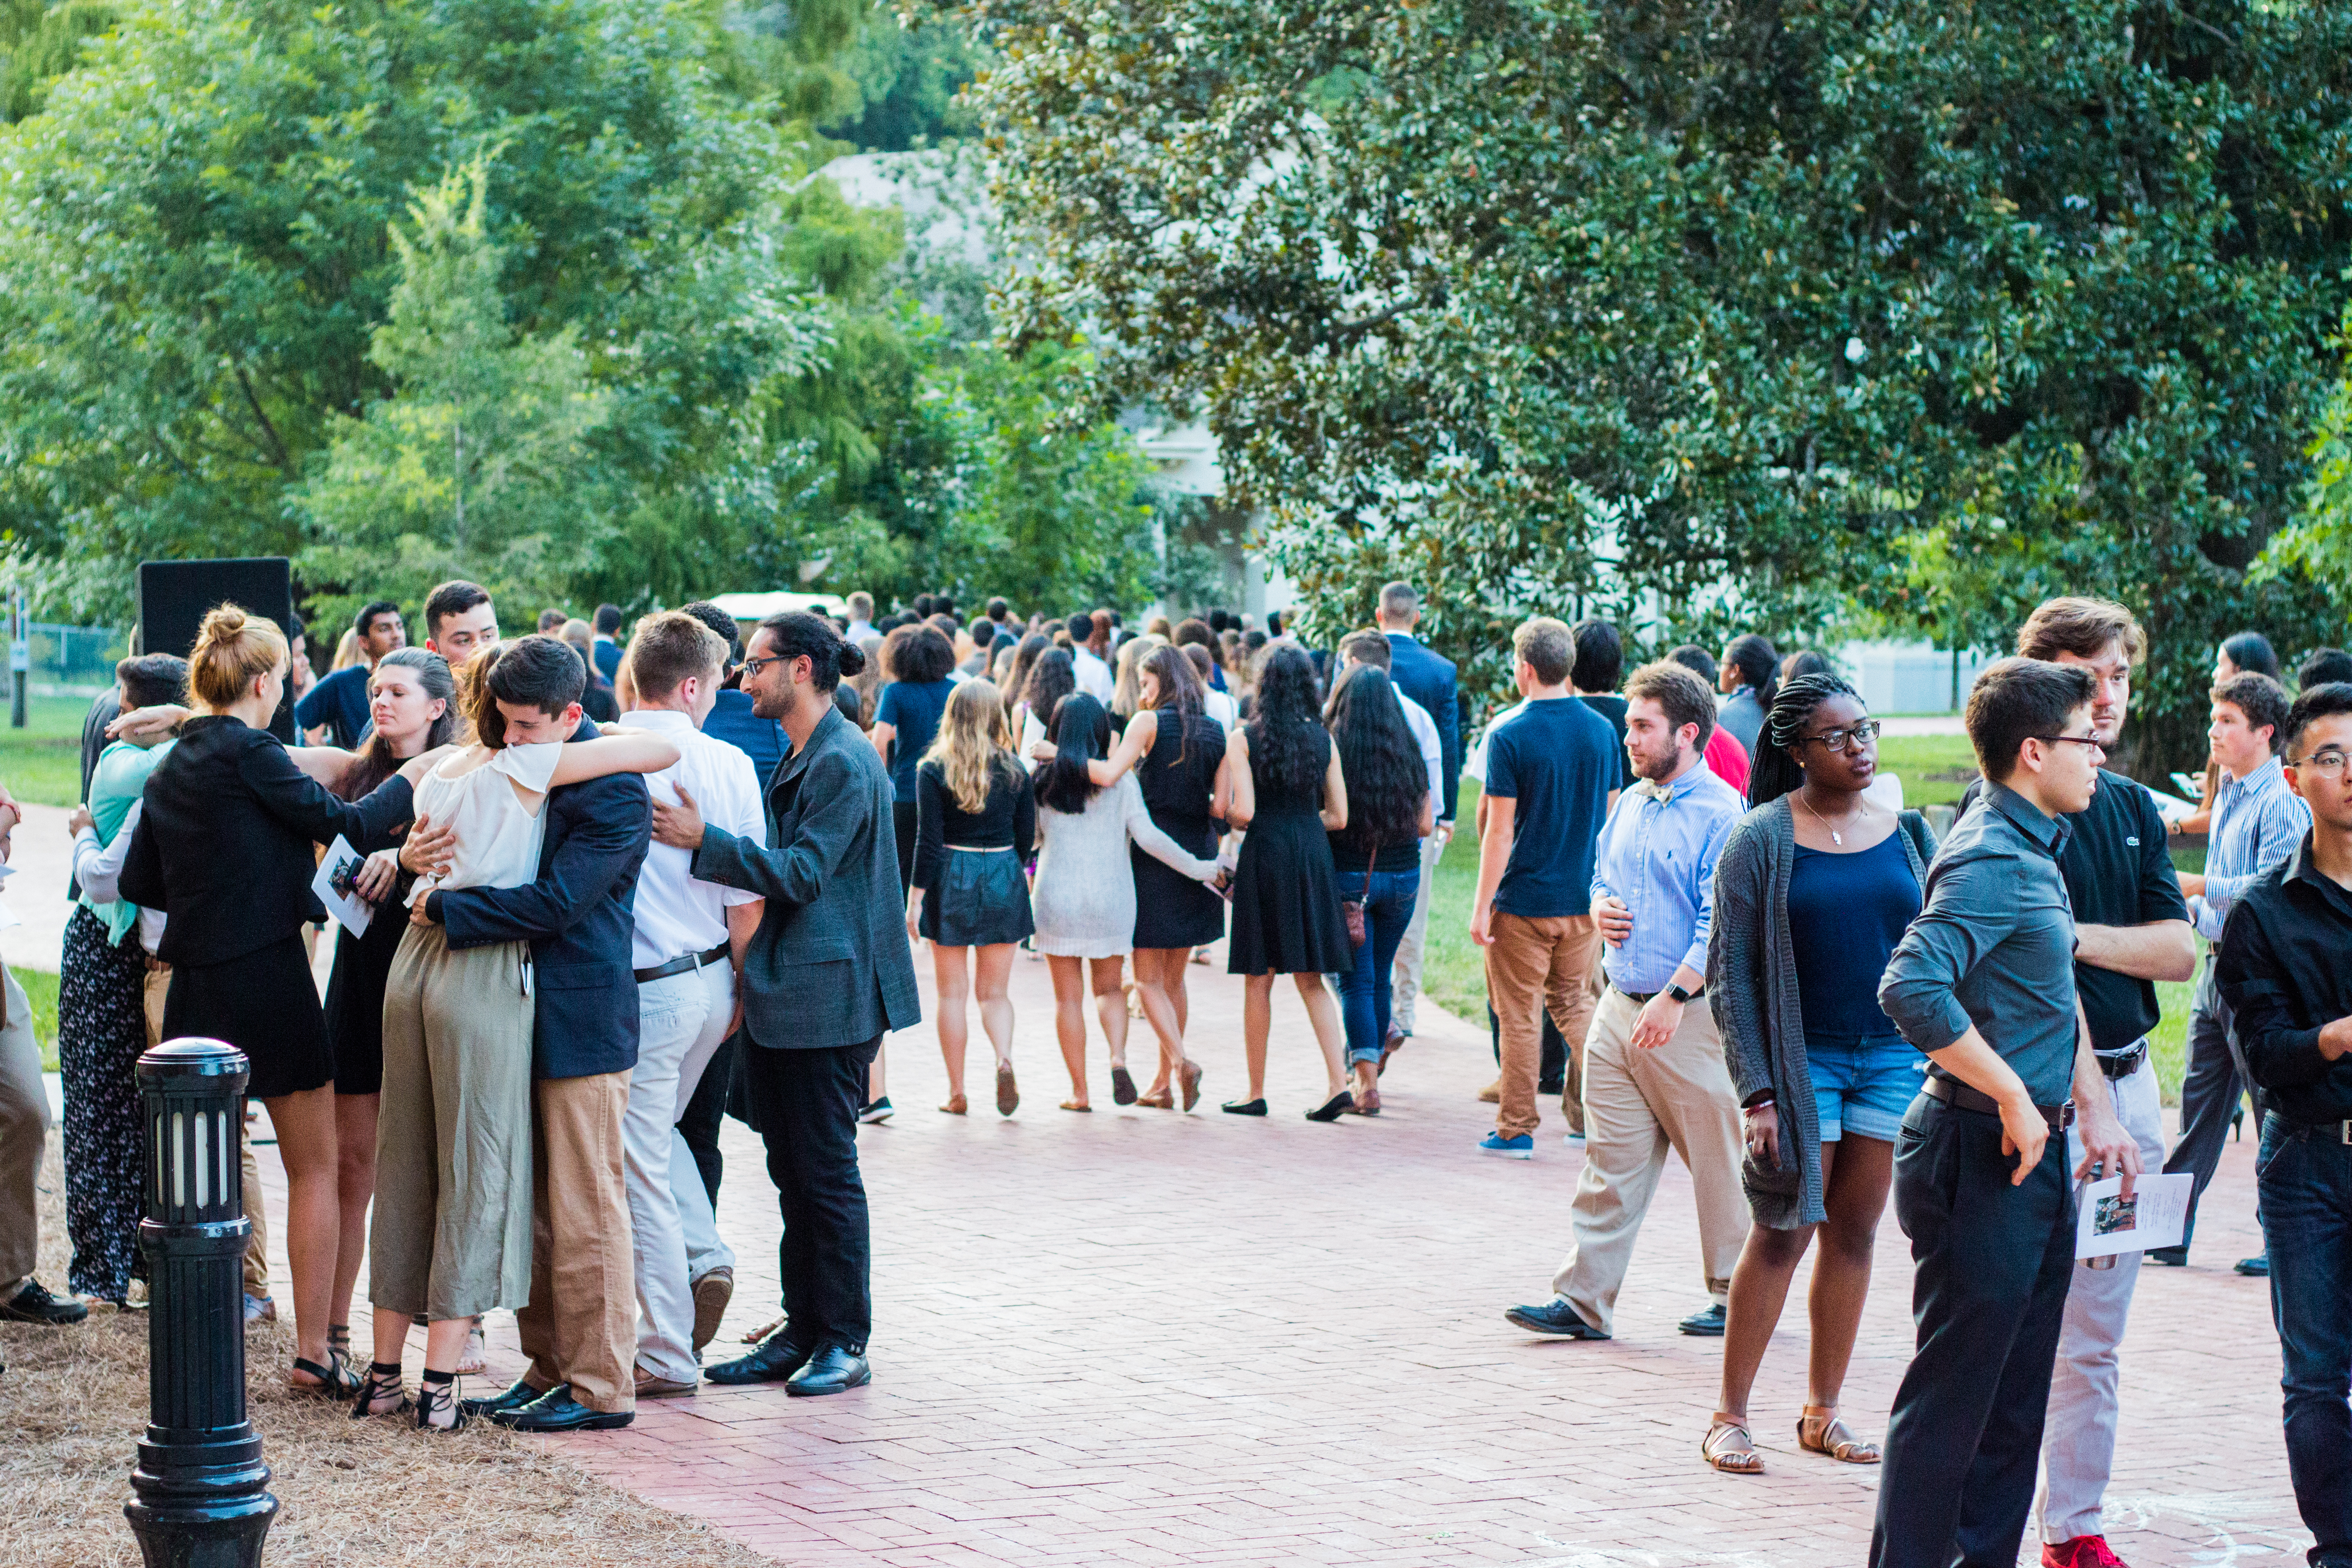 Emory community members mourn at a memorial service for Emory students Abinta Kabir and Faraaz Hossain, who were taken hostage and killed in a terrorist attack in Dhaka, Bangladesh. / Ruth Reyes, Photo Editor